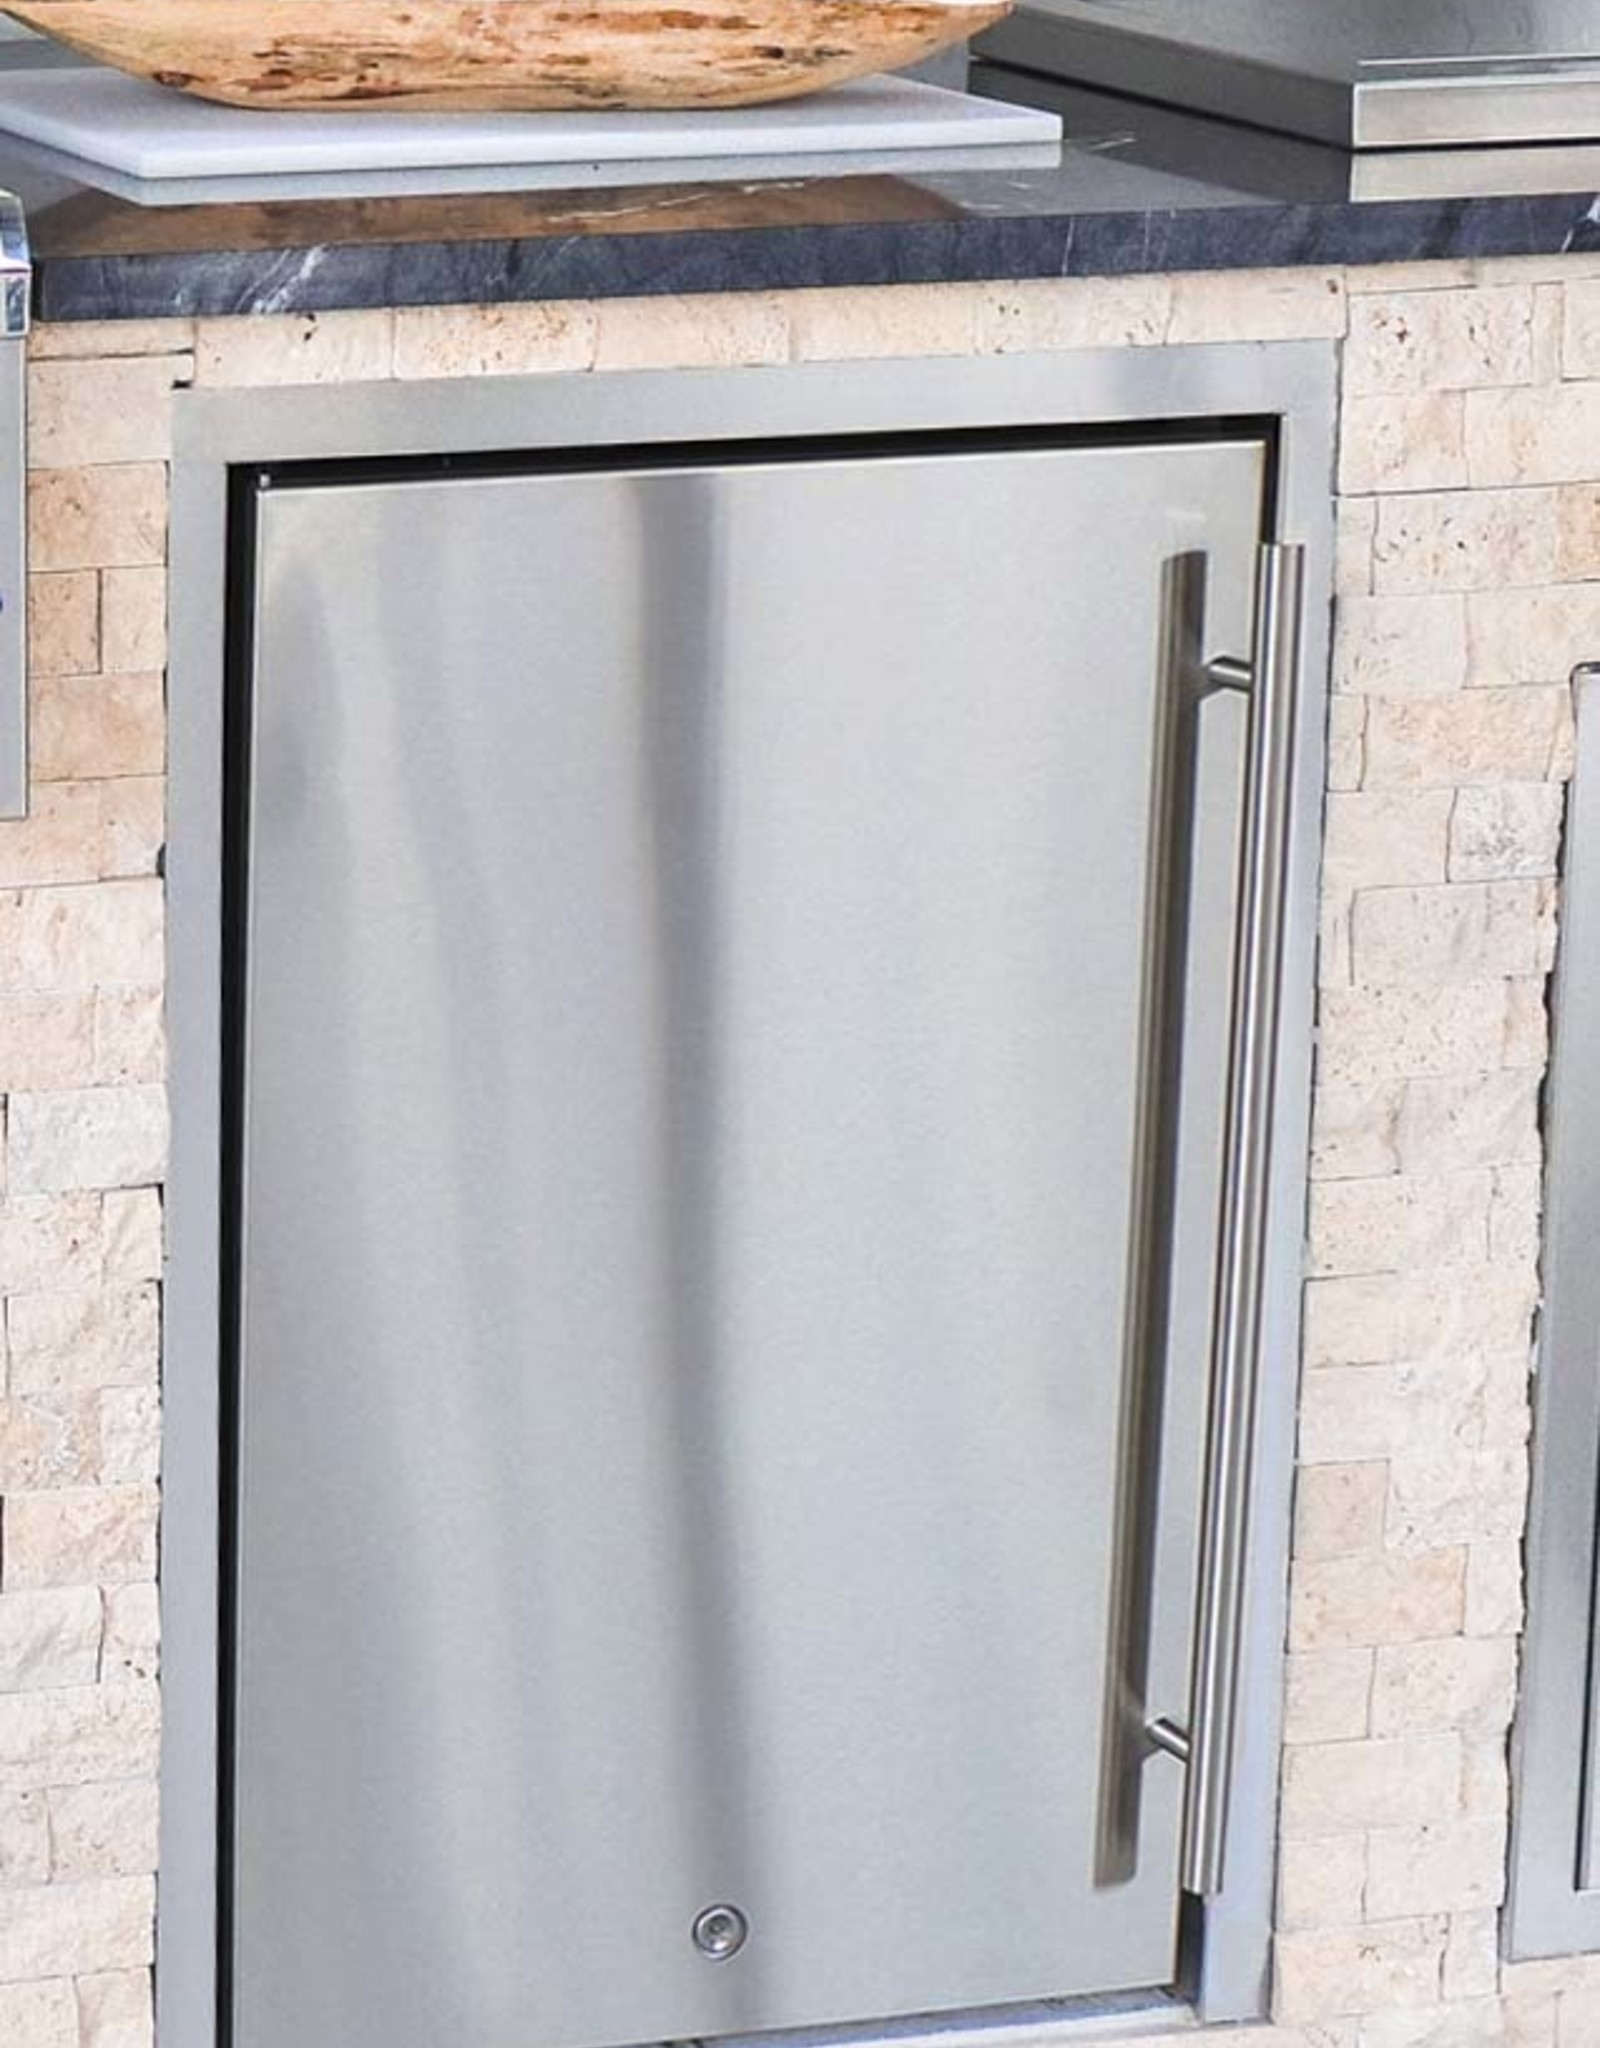 Renaissance Cooking Systems Renaissance Cooking Systems REFR1A Door Upgrade Kit (Swings Left) - SSFDLB